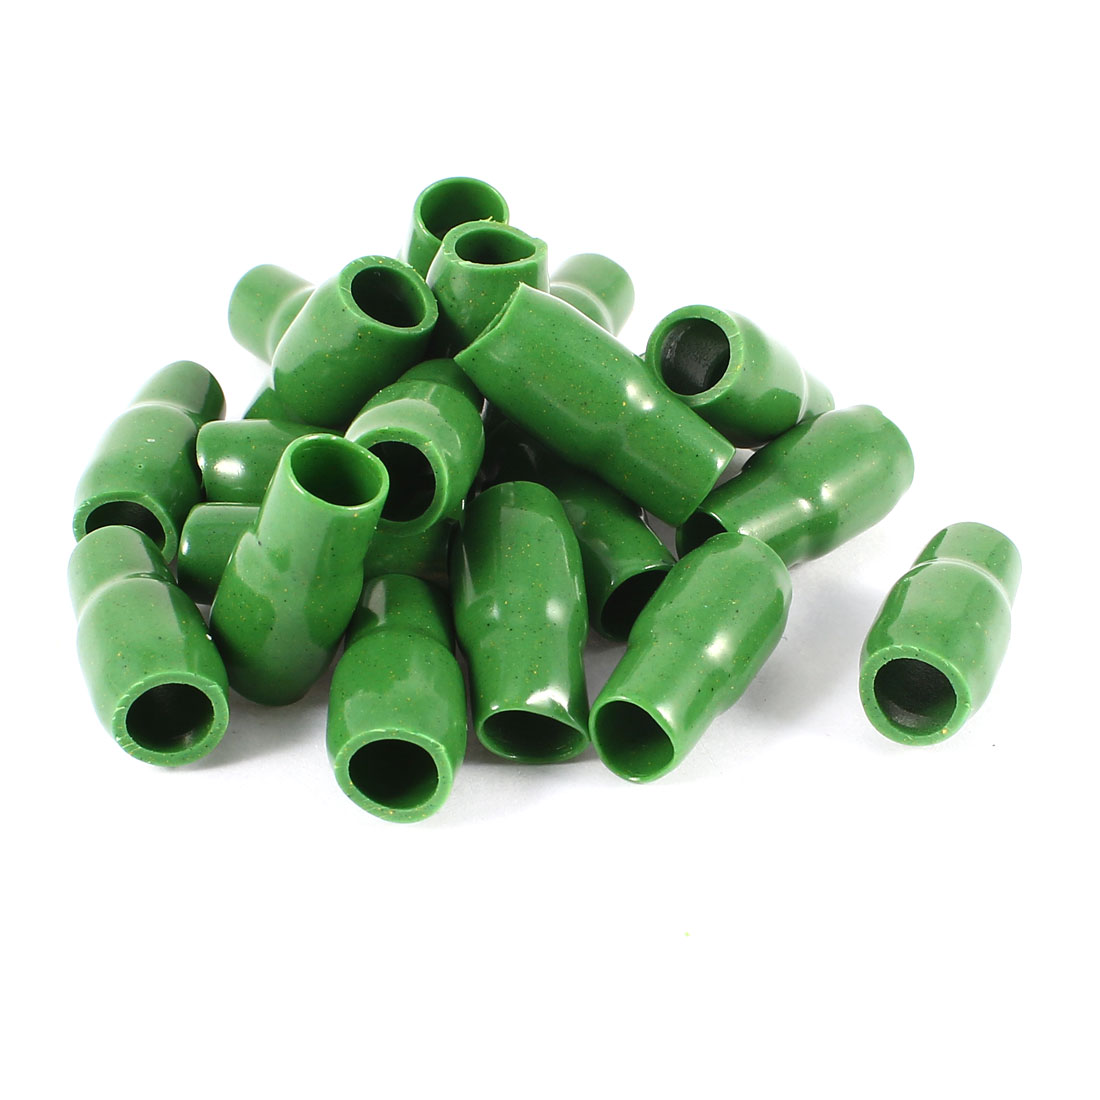 20 Pcs Green Soft PVC Wire V-14 16mm2 Crimp Terminal End Insulated Sleeves Caps Cover